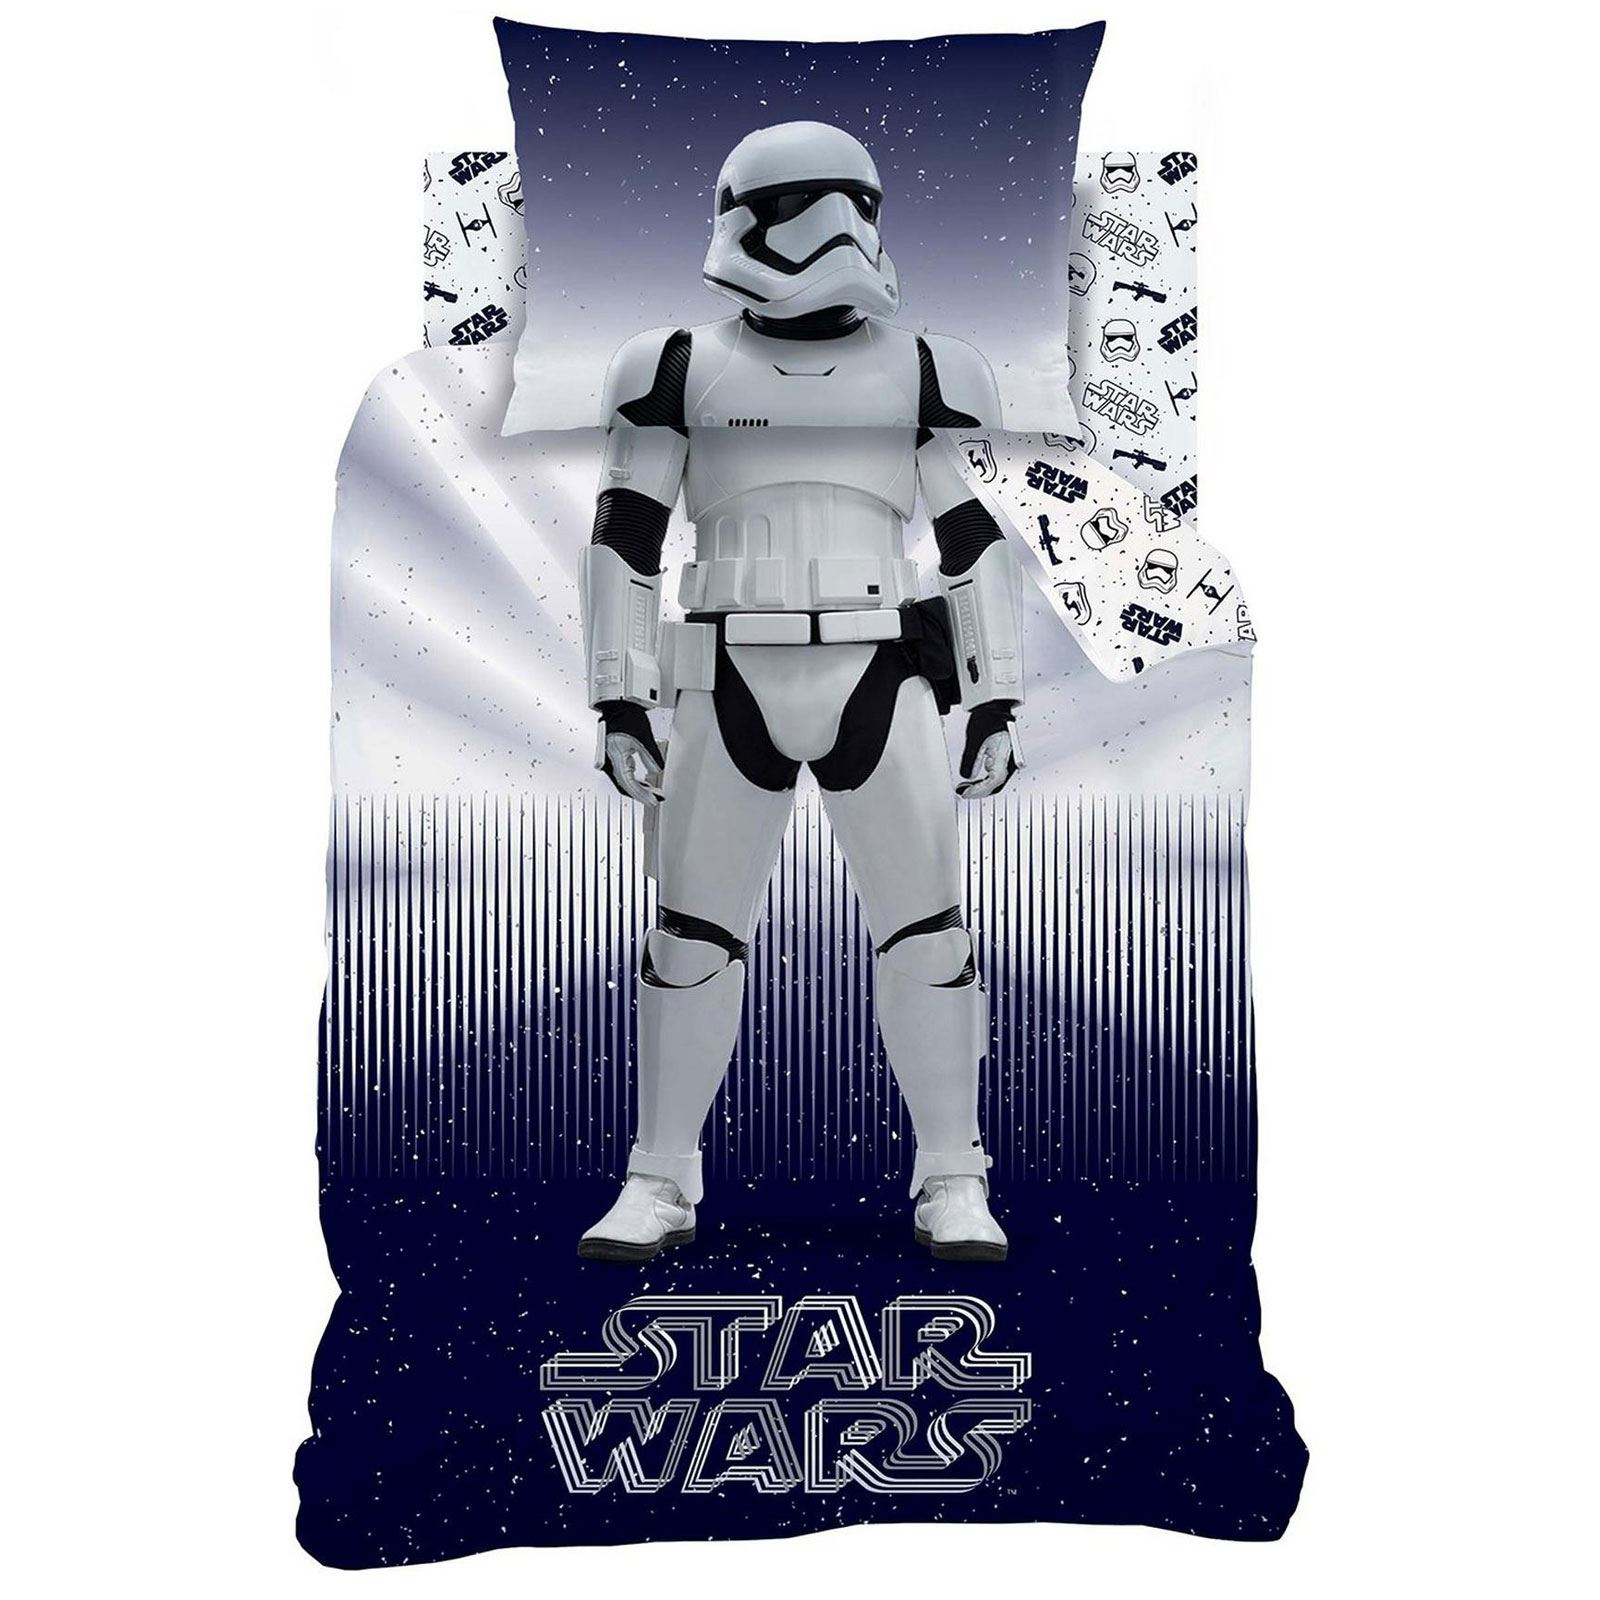 star wars storm trooper einzelbettbezug set jungen 2 in 1 design ebay. Black Bedroom Furniture Sets. Home Design Ideas